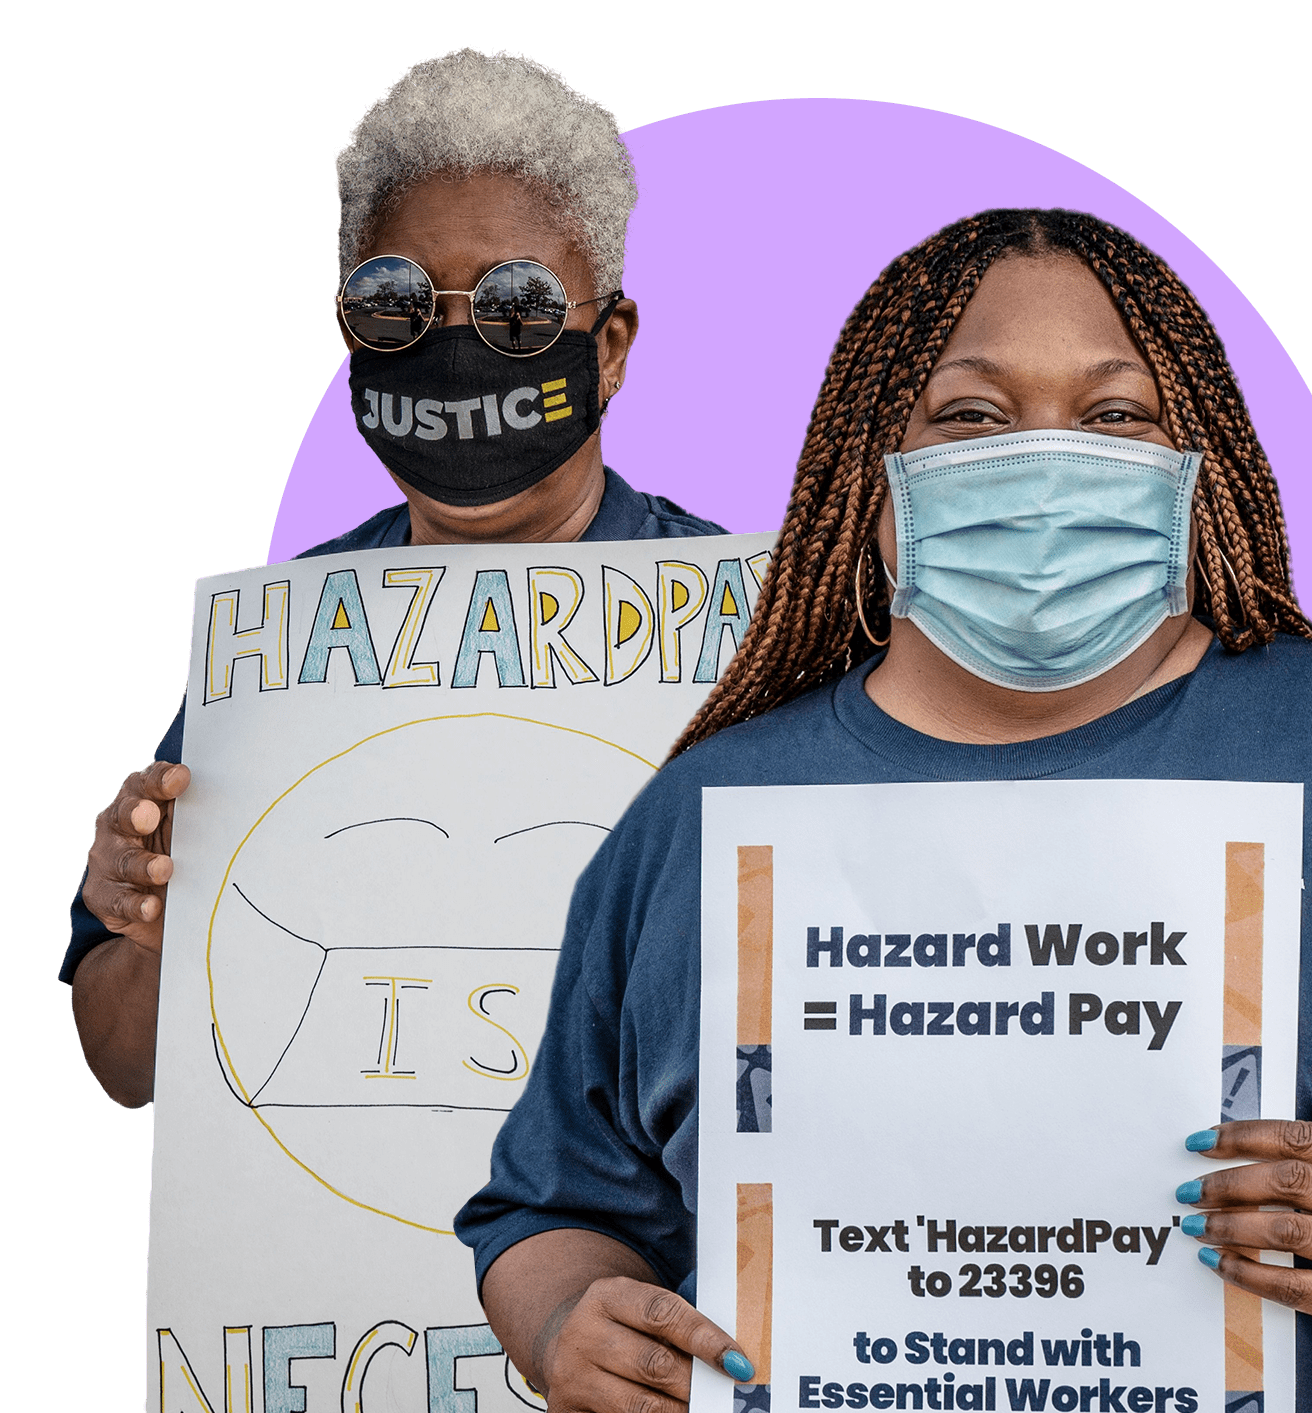 Essential workers deserve hazard pay